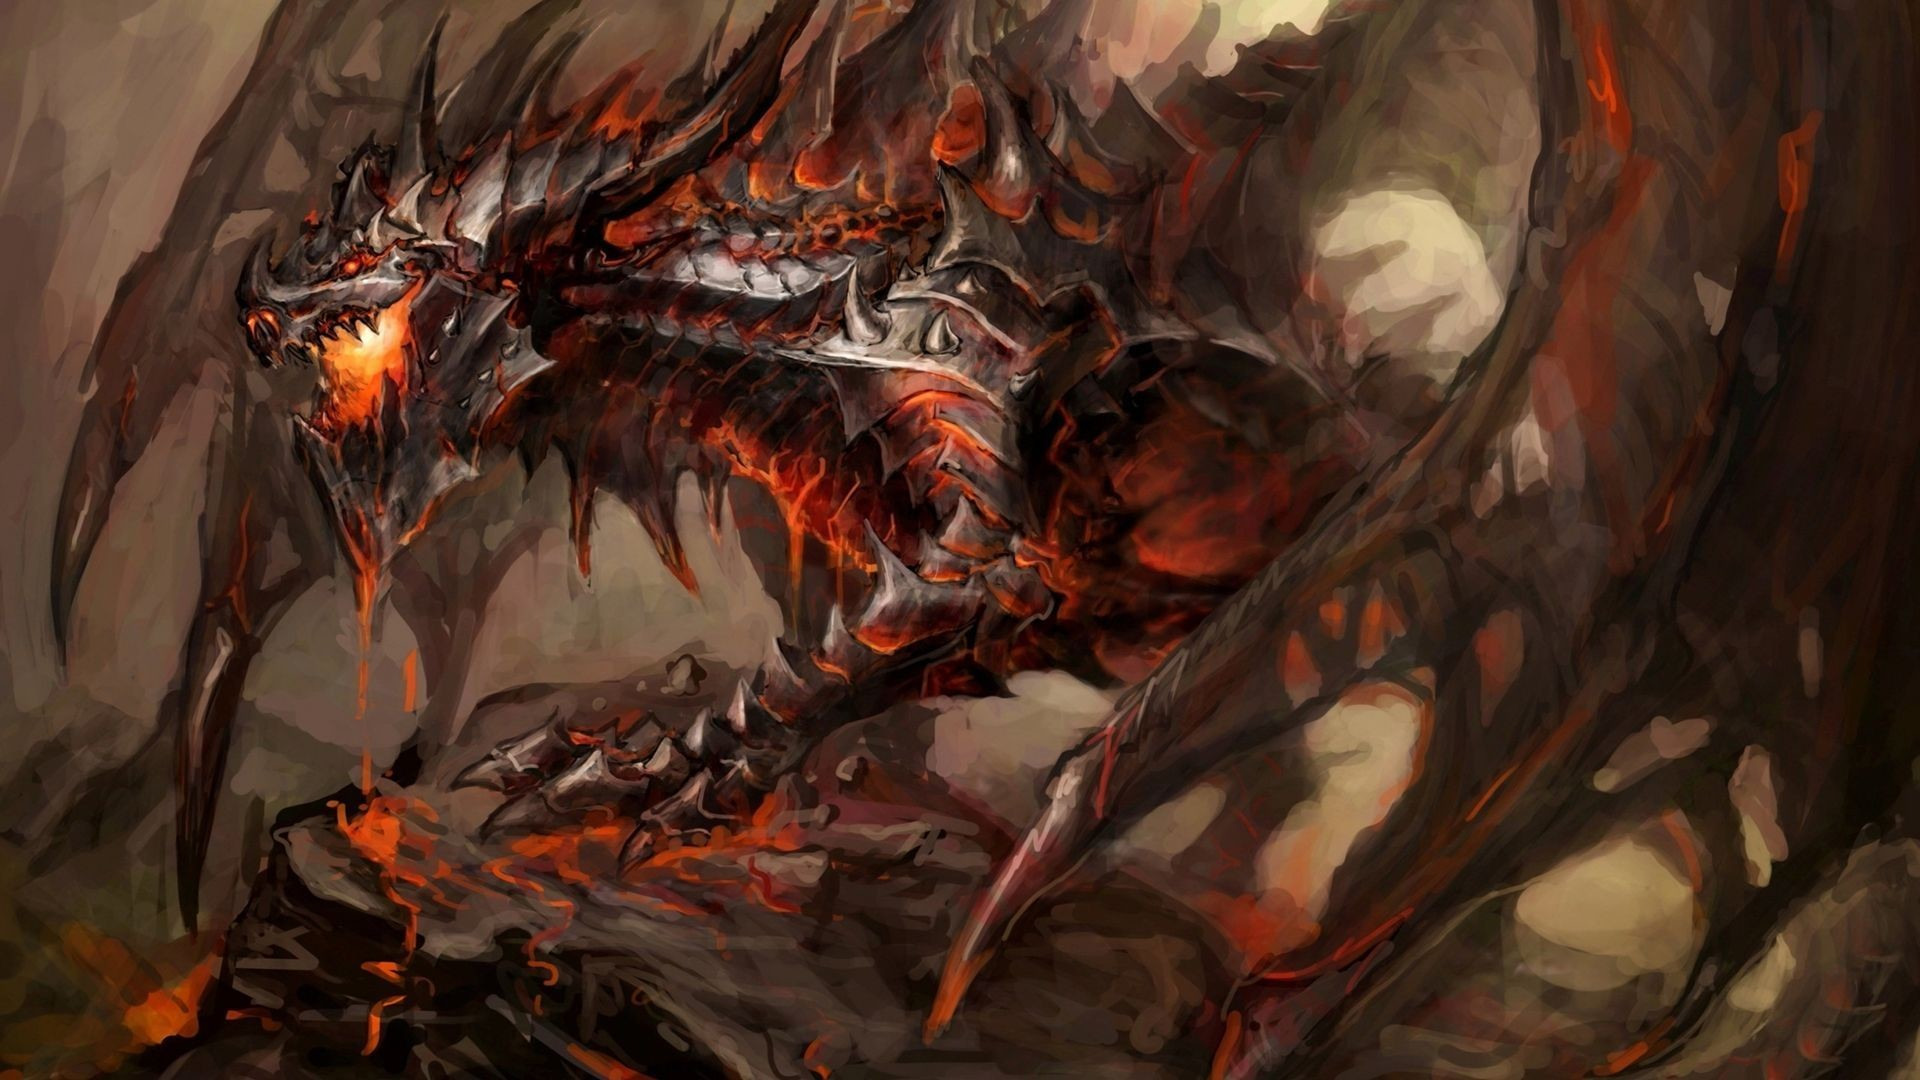 Red Fire Dragon: Red And Black Dragon Wallpaper (64+ Images